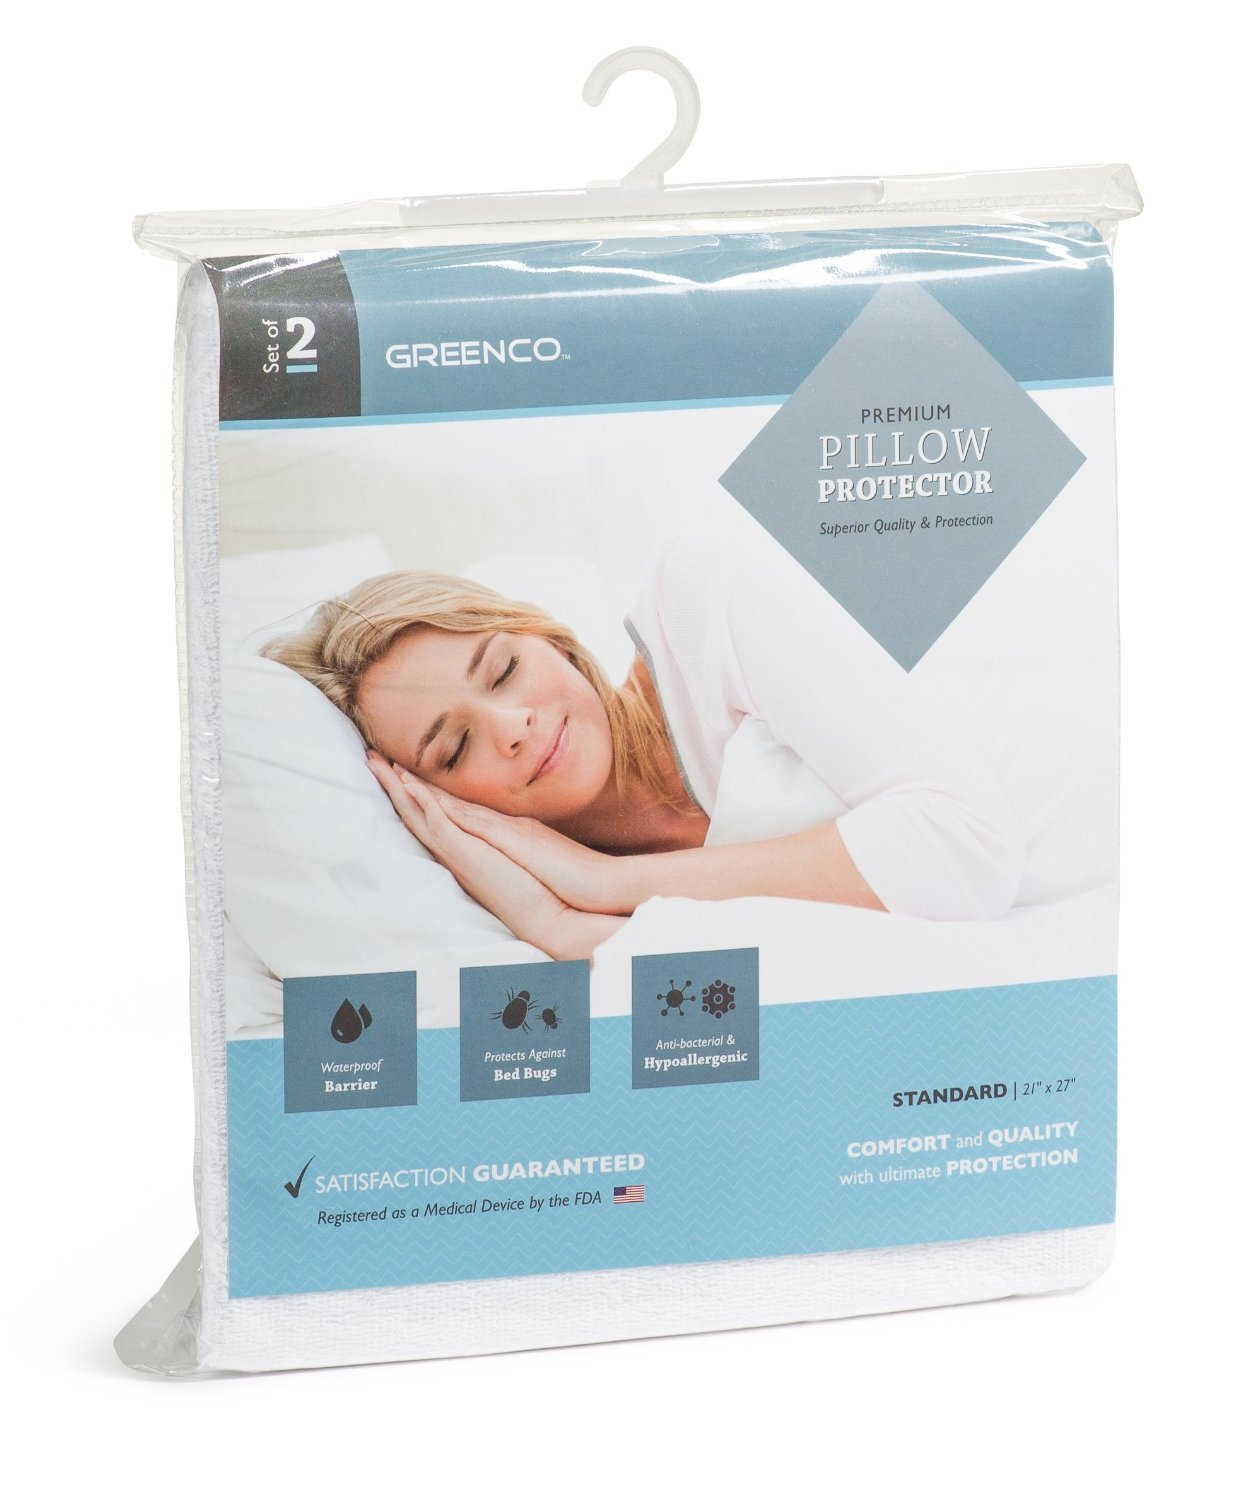 Greenco Premium Hypoallergenic Bed Bug, dust mites Proof Zippered Waterproof, Pillow Protector, Terry Surface, Set of 2, Standard Size (21 x 27 Inches)